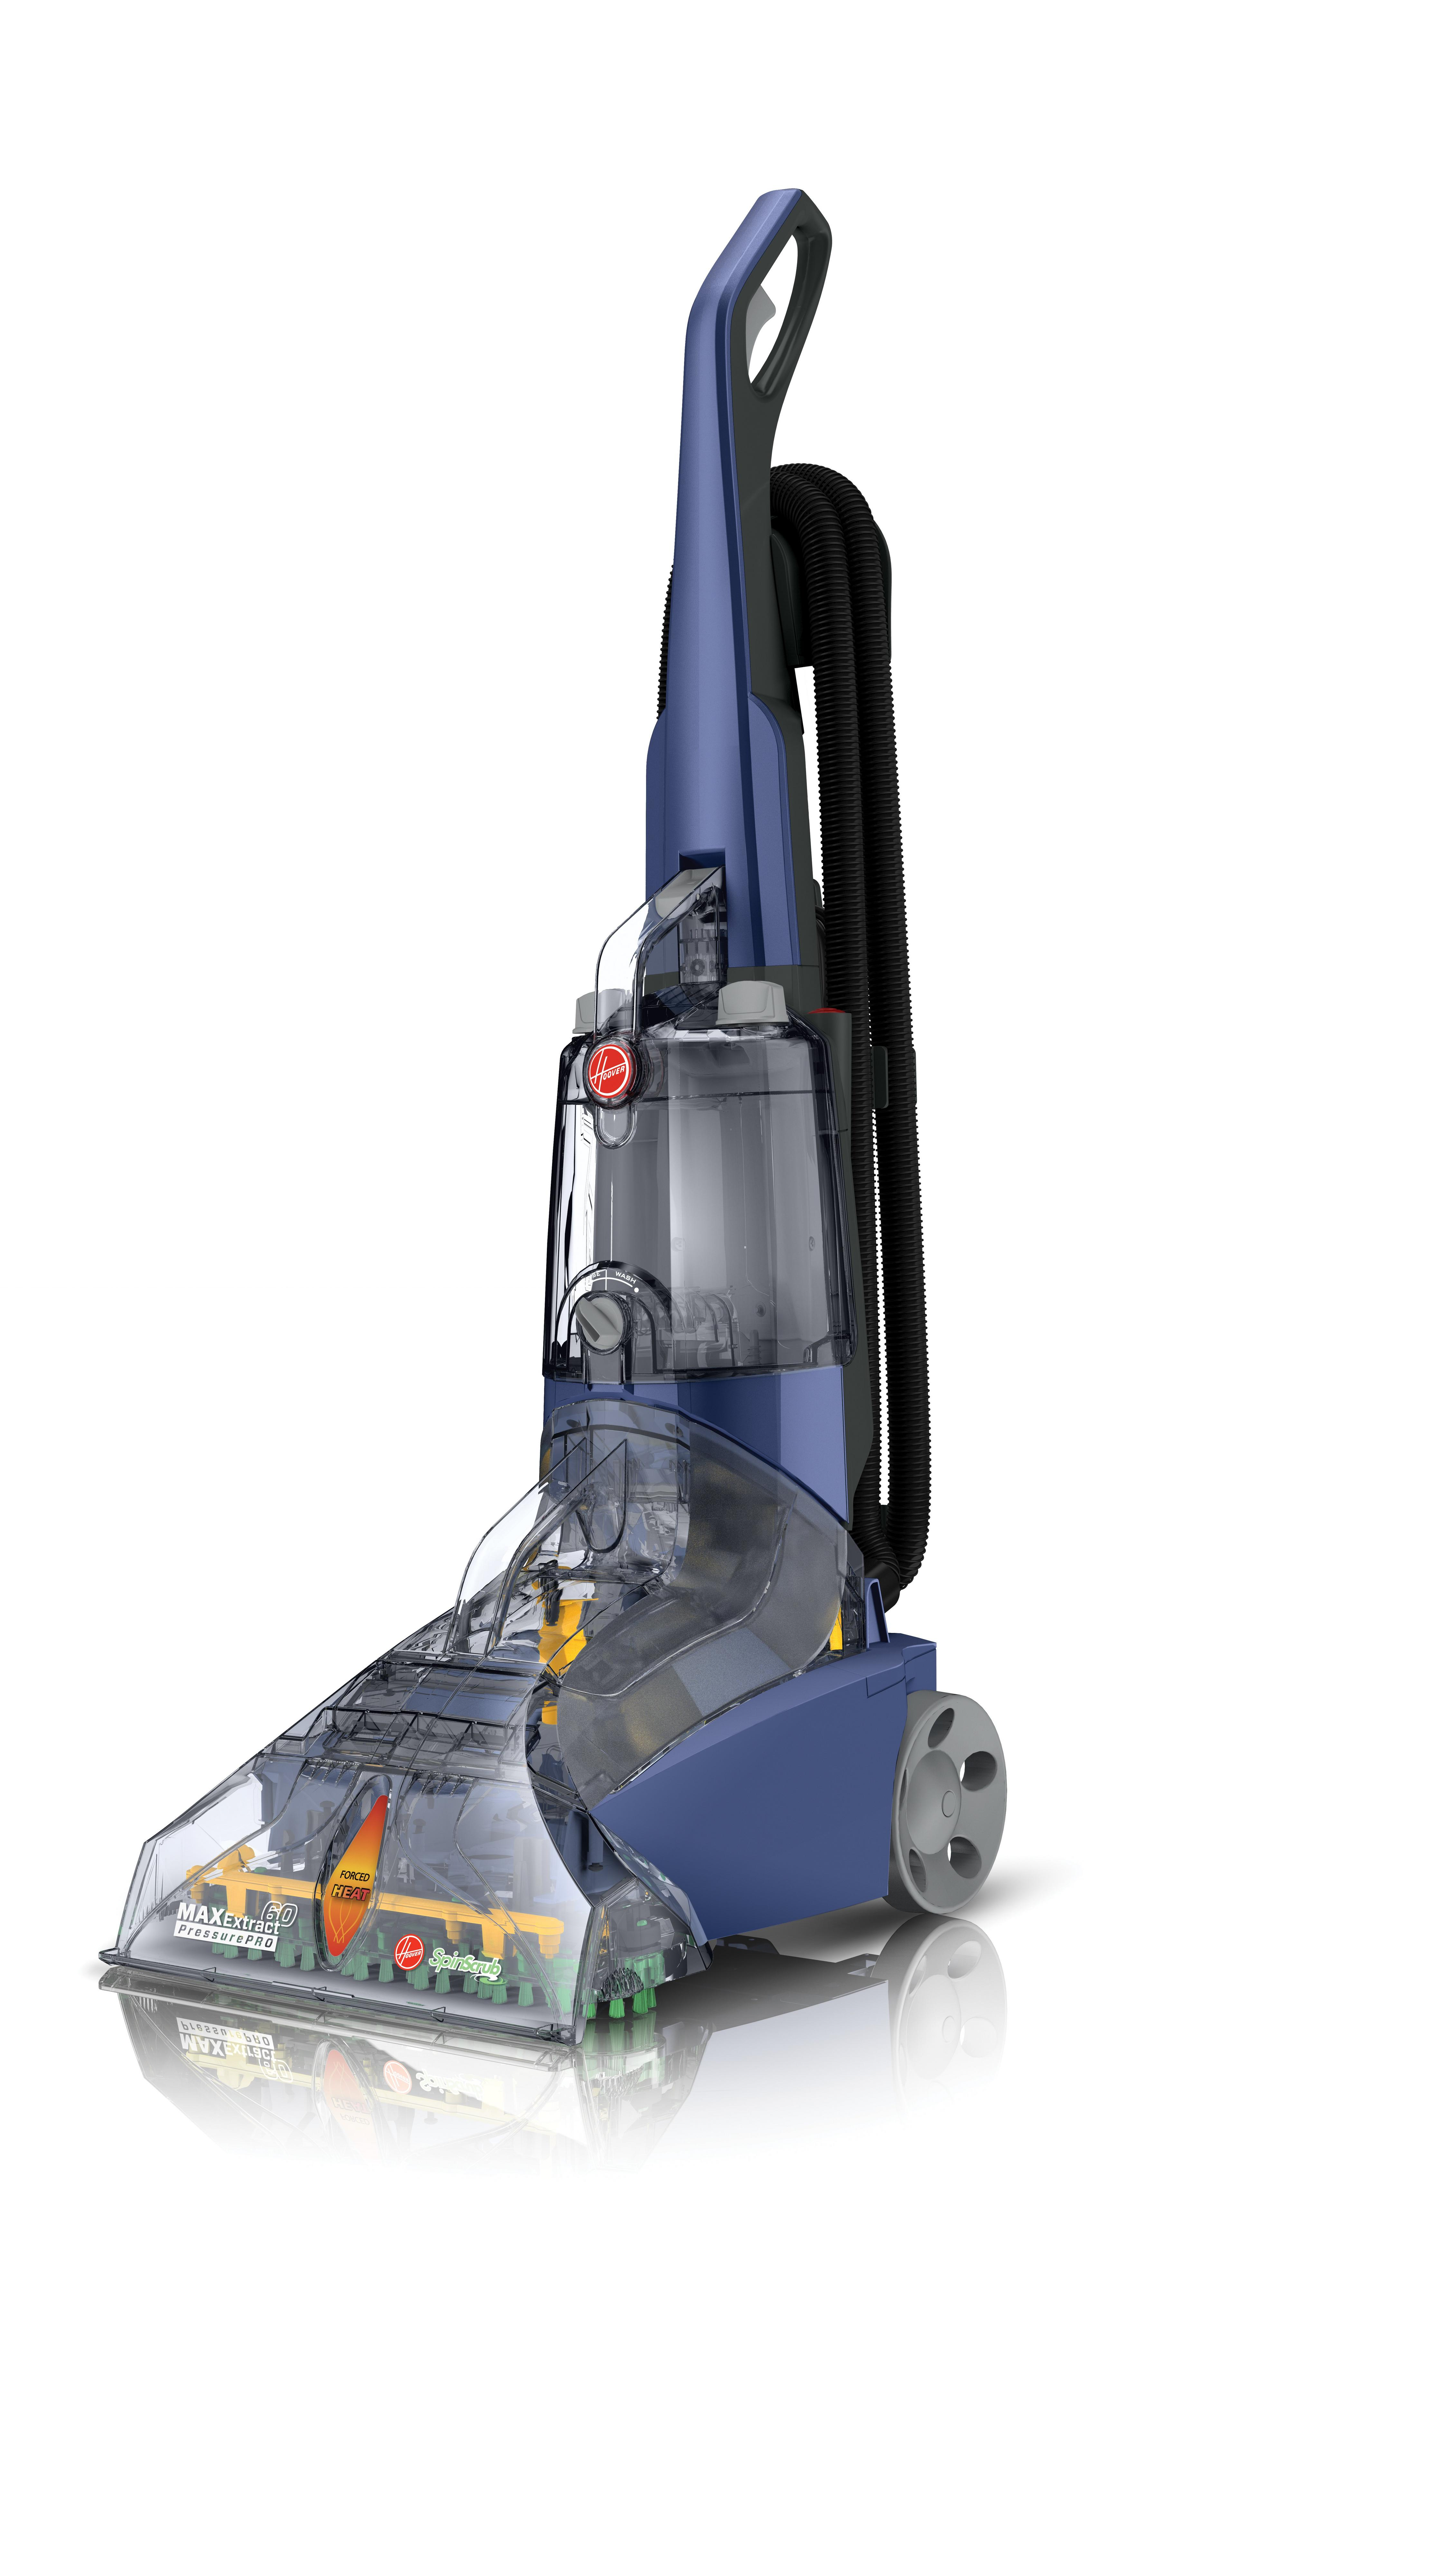 Max Extract 60 Pressure Pro Carpet Cleaner FH50220